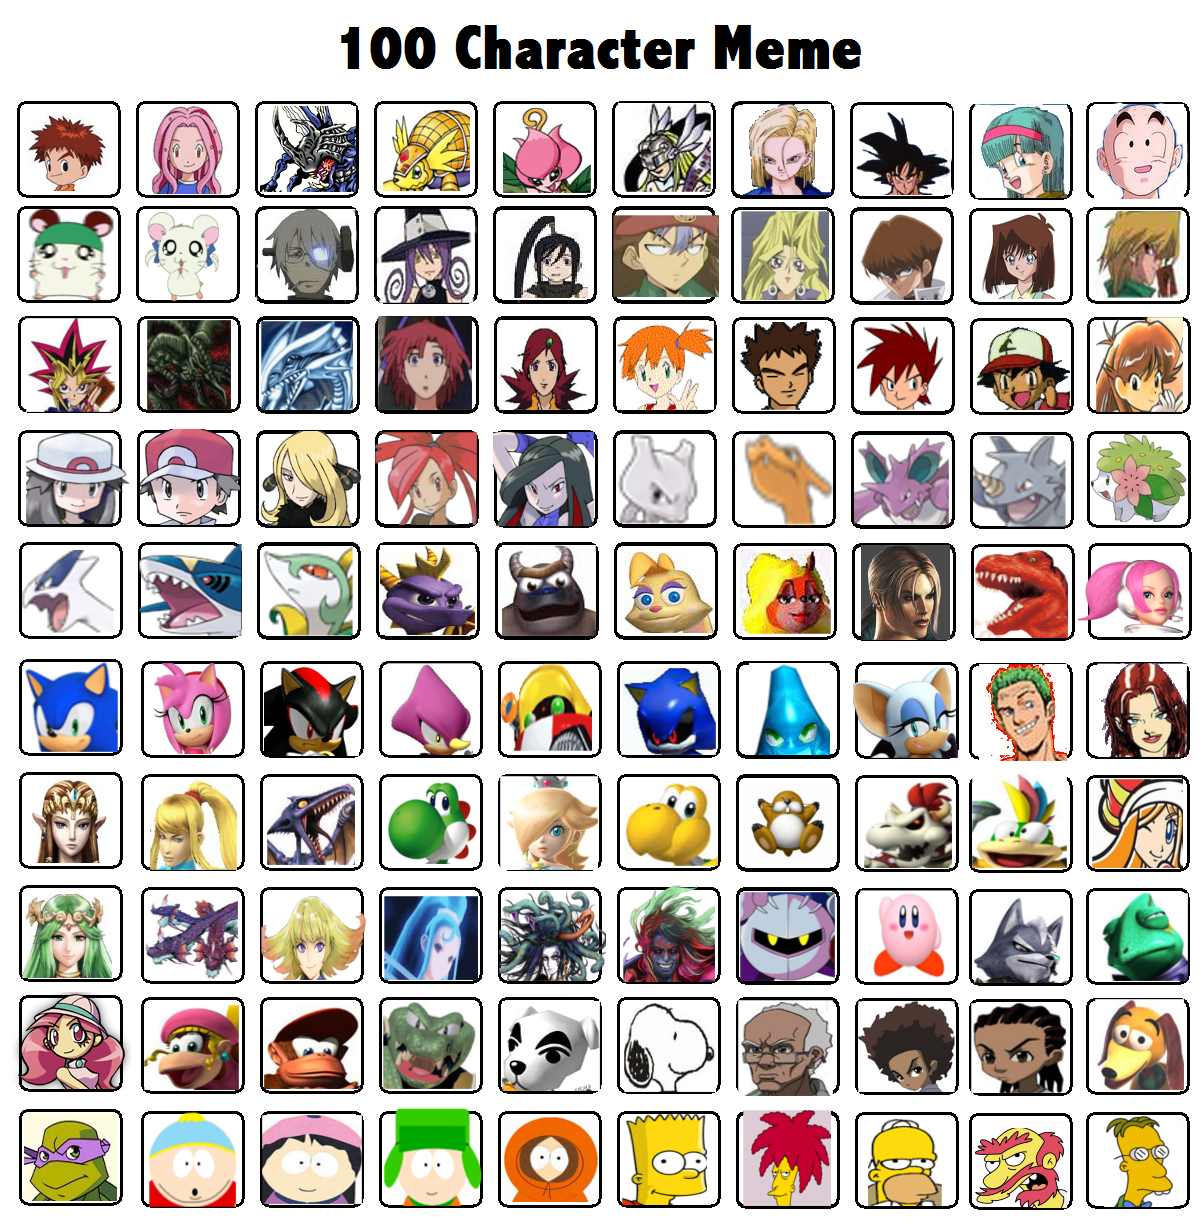 my_top_100_characters_over_all_meme_by_whosaskin d5e6wzf 100charactermeme explore 100charactermeme on deviantart